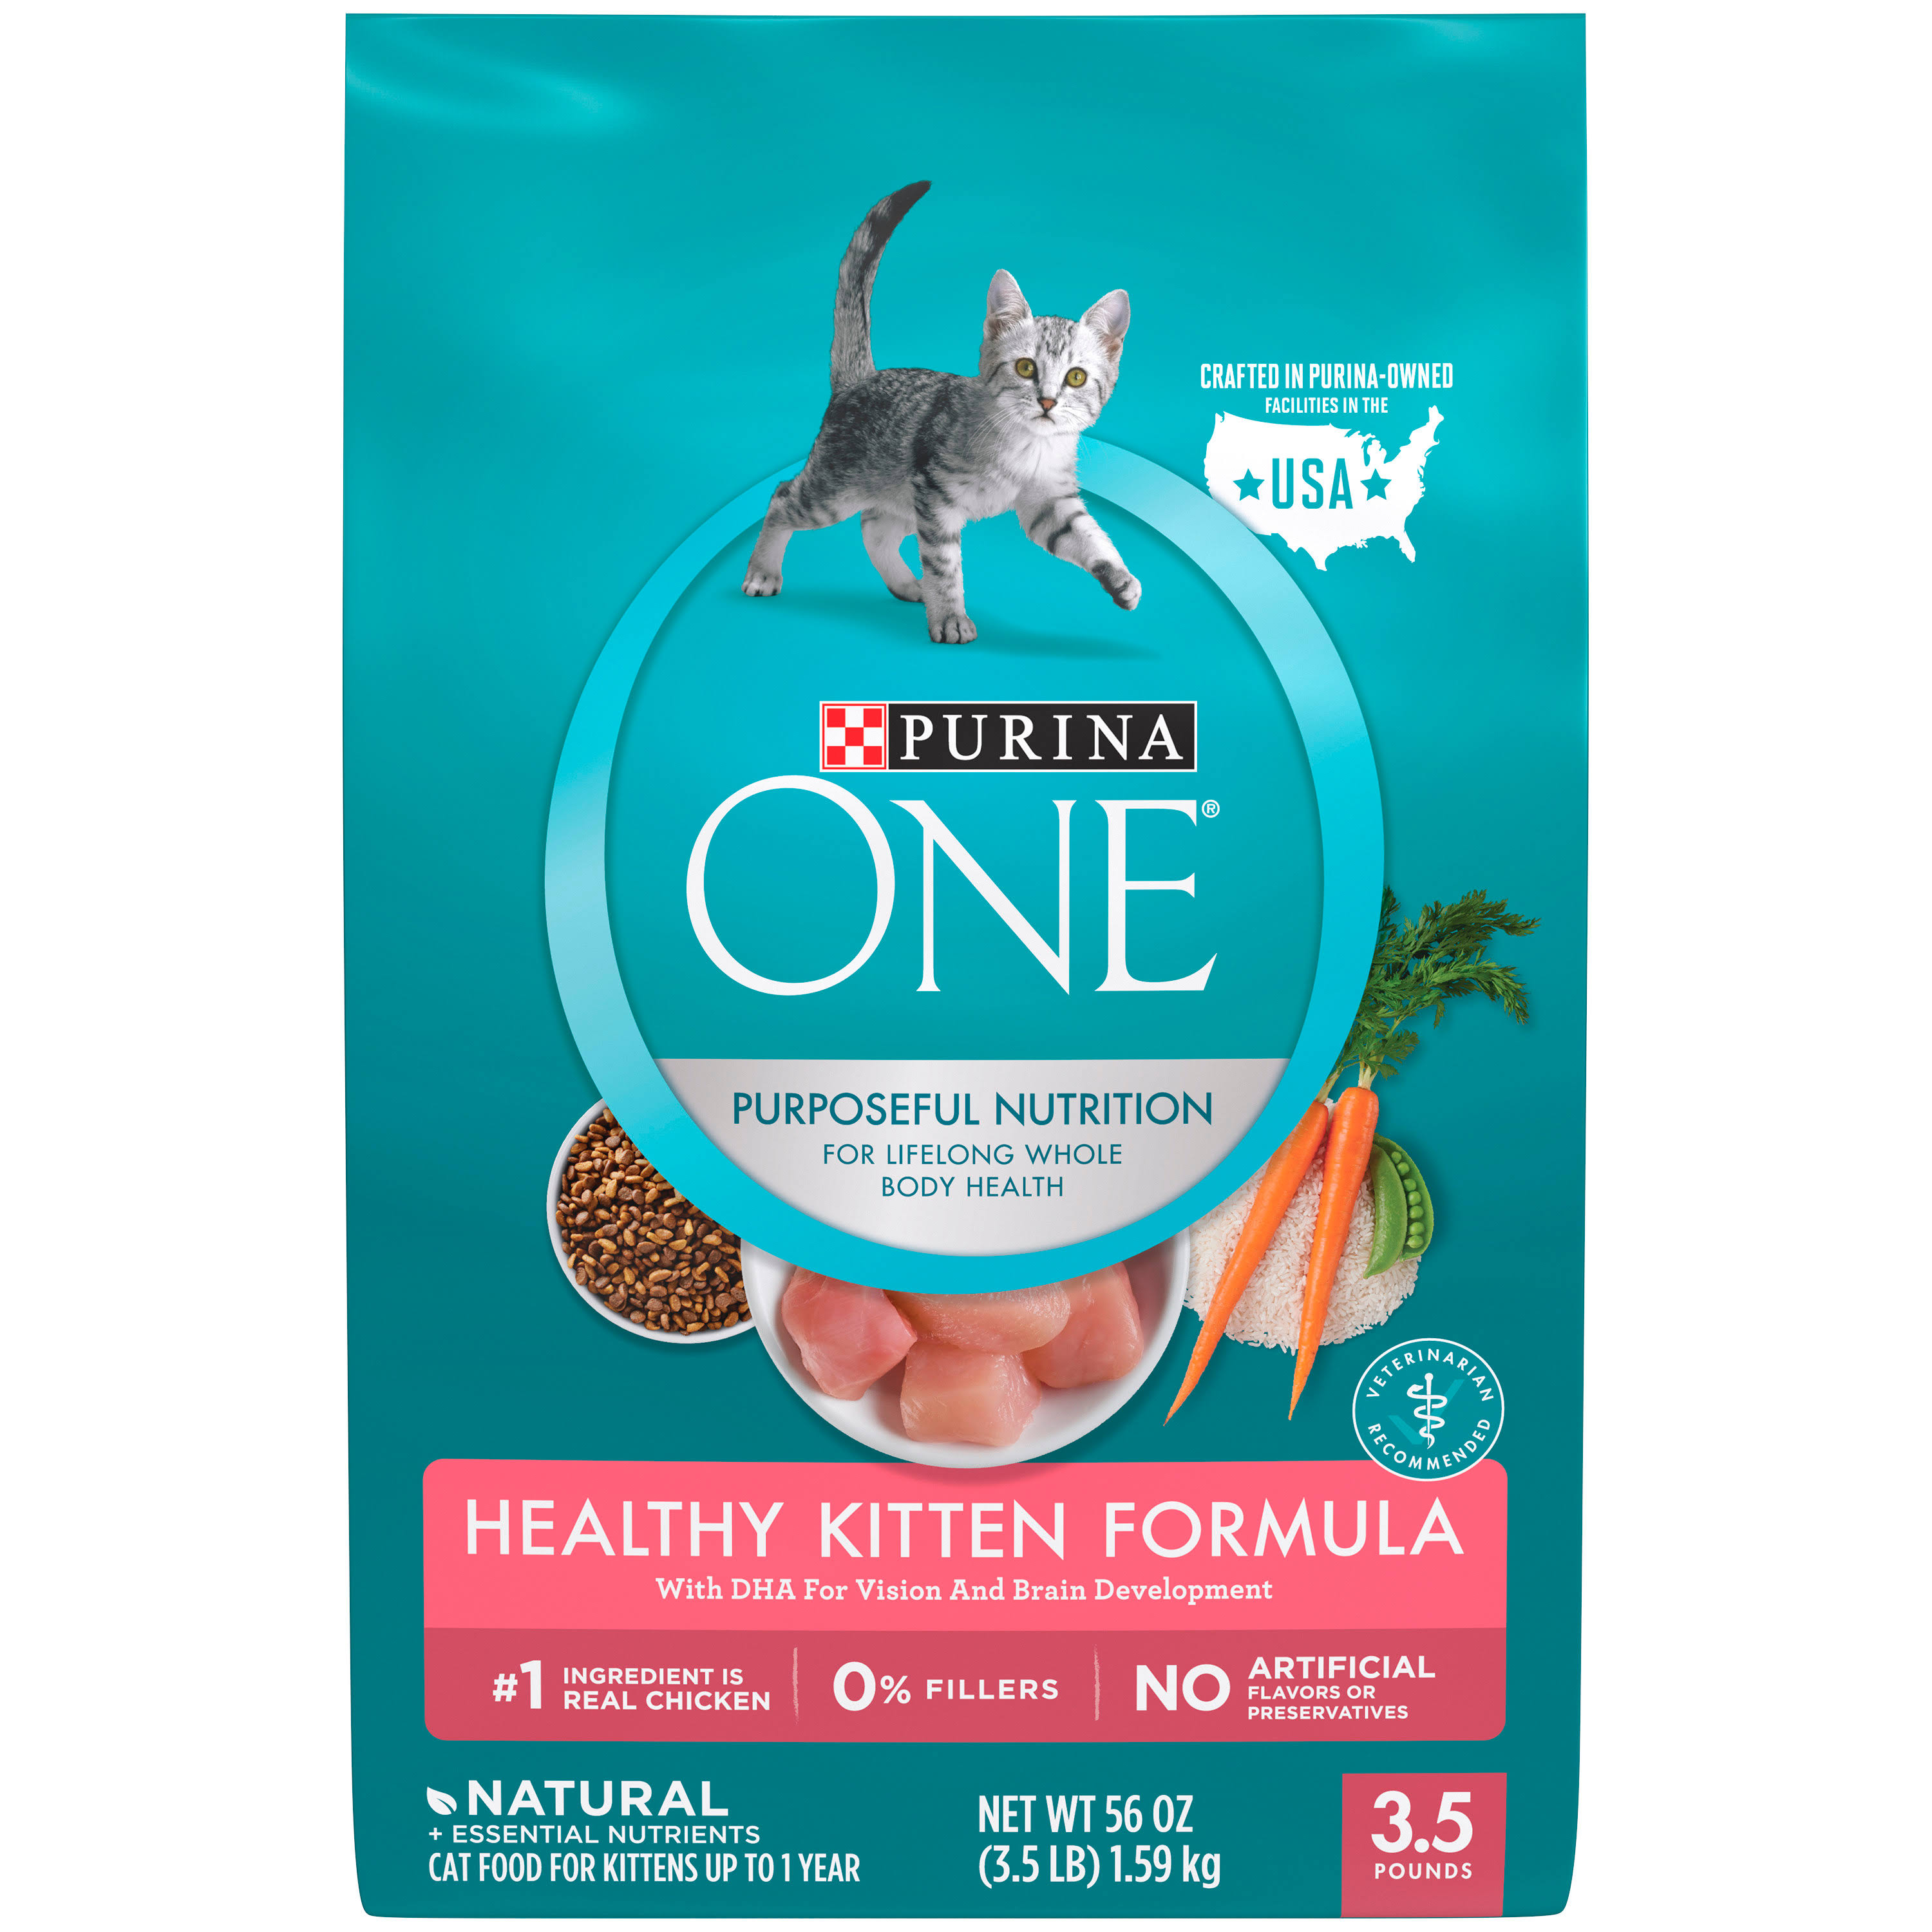 Purina One Healthy Kitten Formula Premium Cat Food - 3.5lb